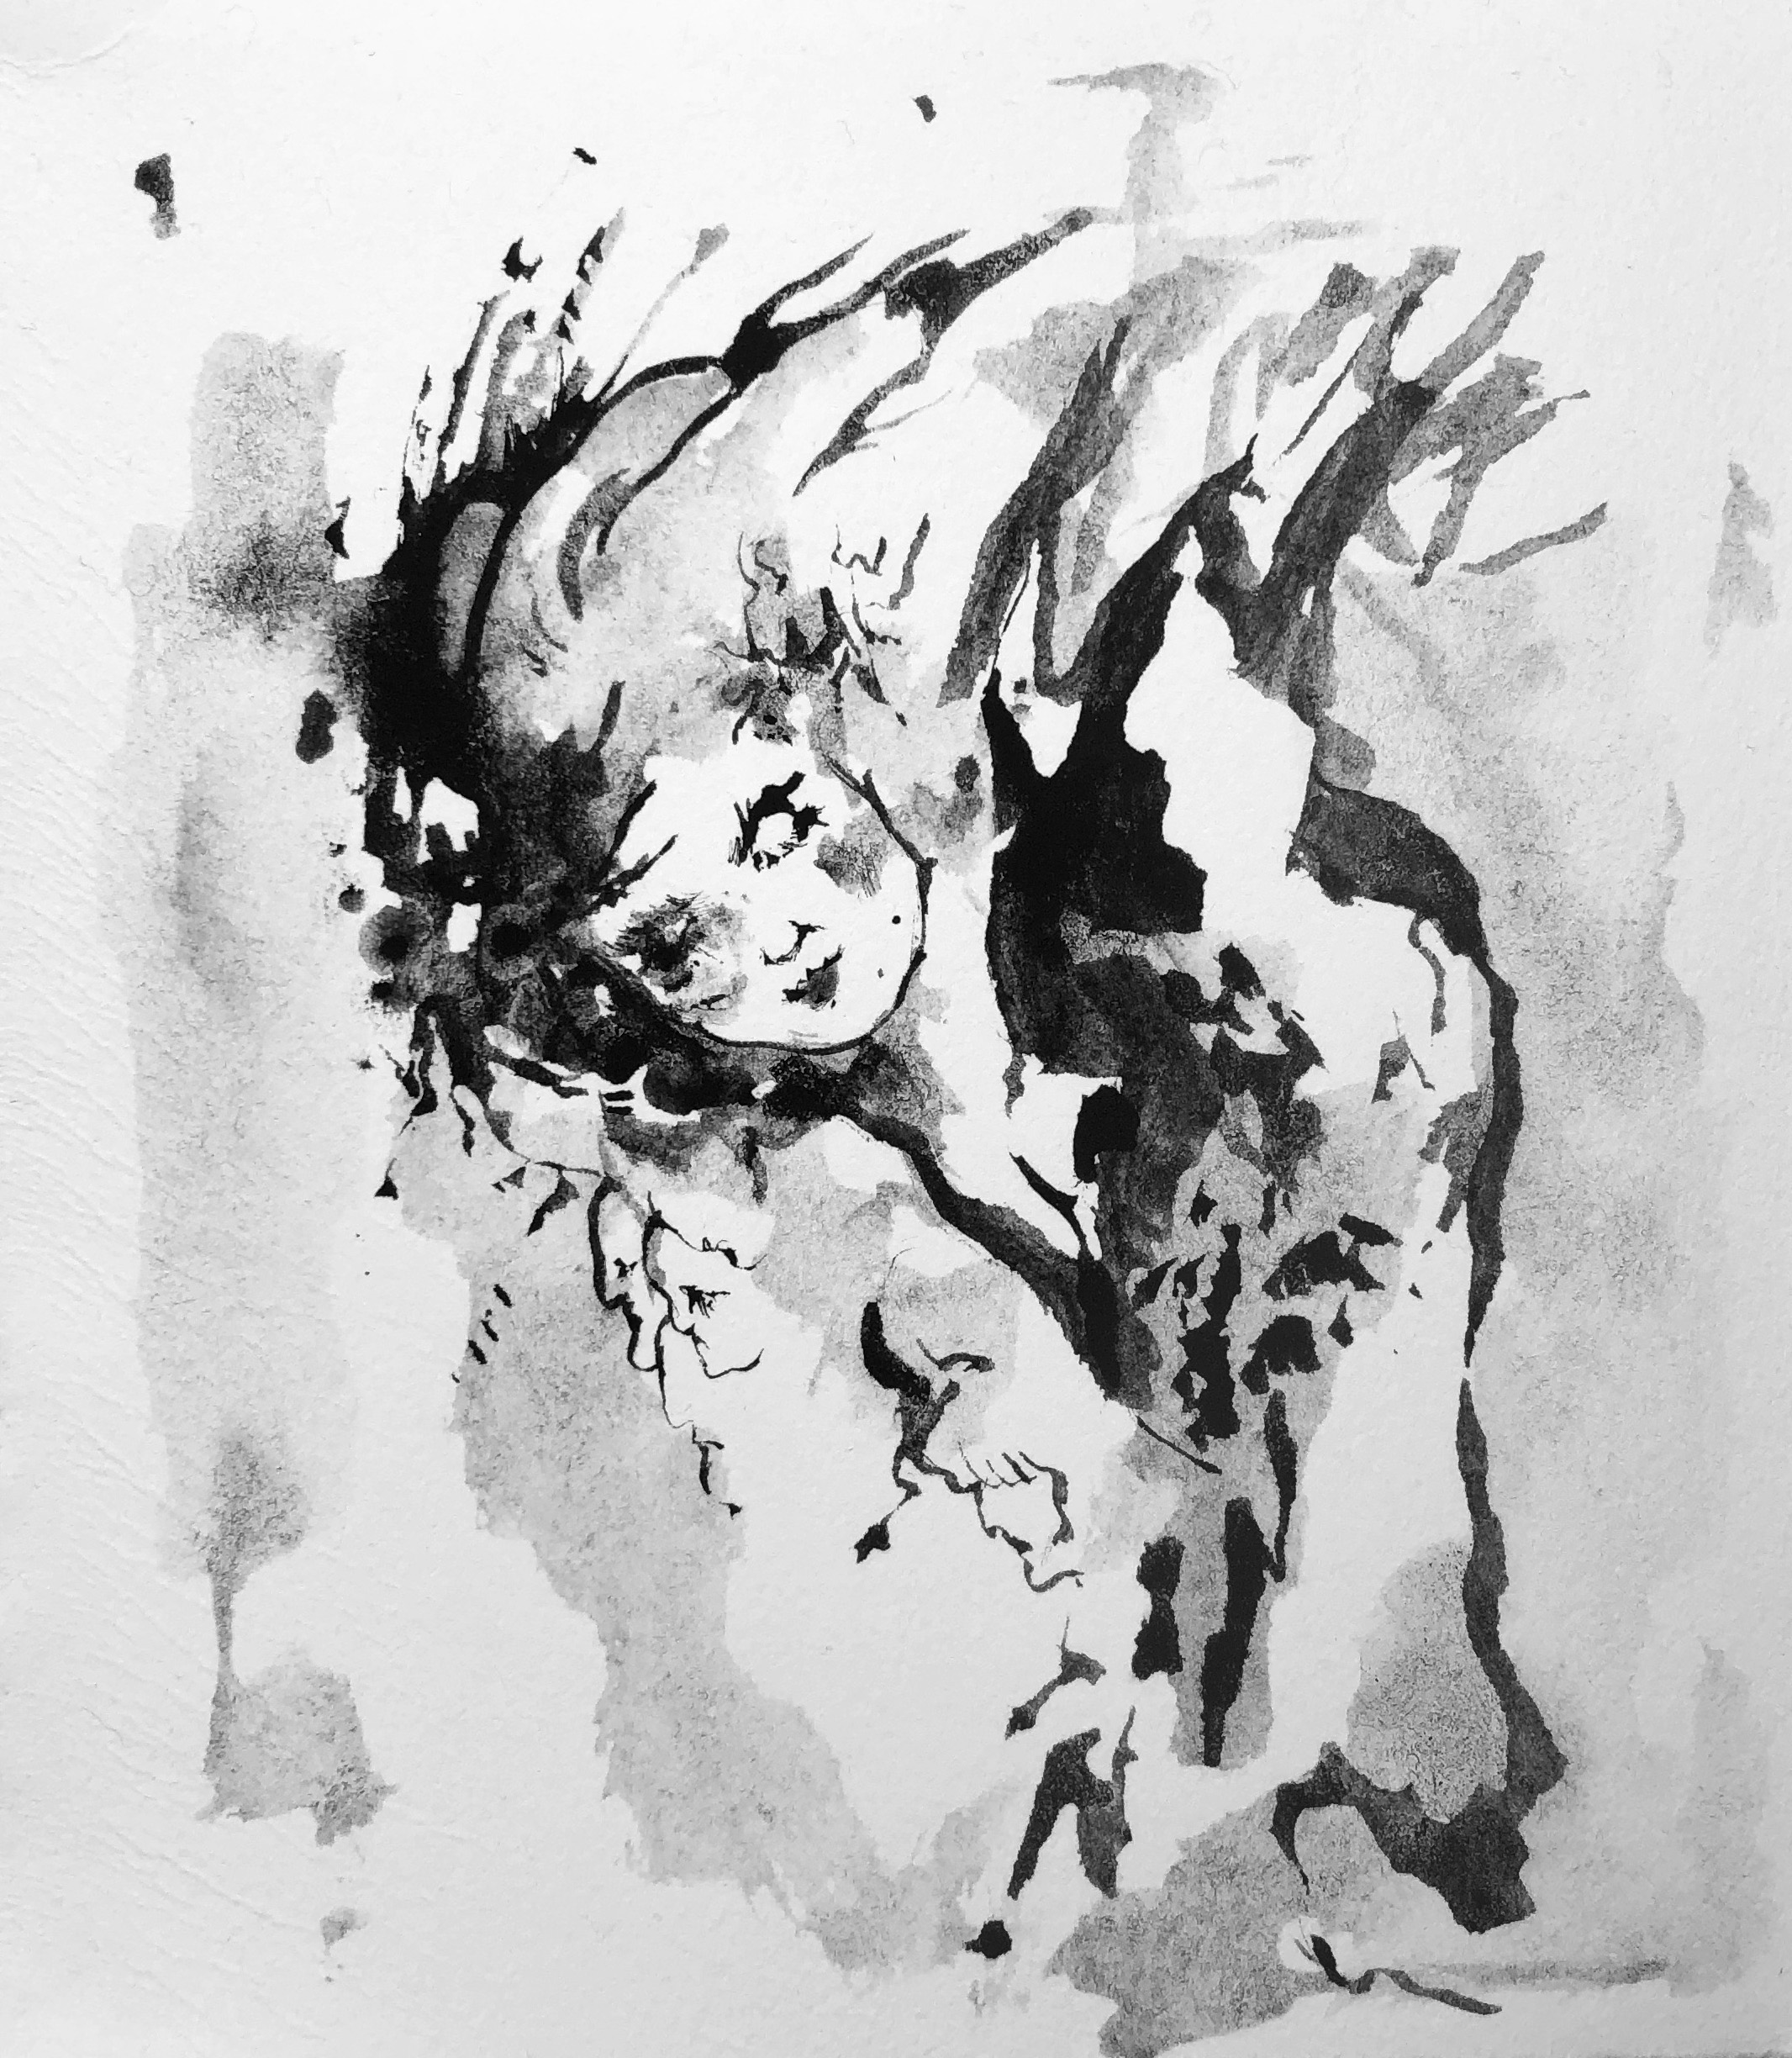 """In Dreams  Robyn Tang Black Ink on Hahnemuhle Etching Paper Paper Size: 5.5""""w x 6""""h 2017"""